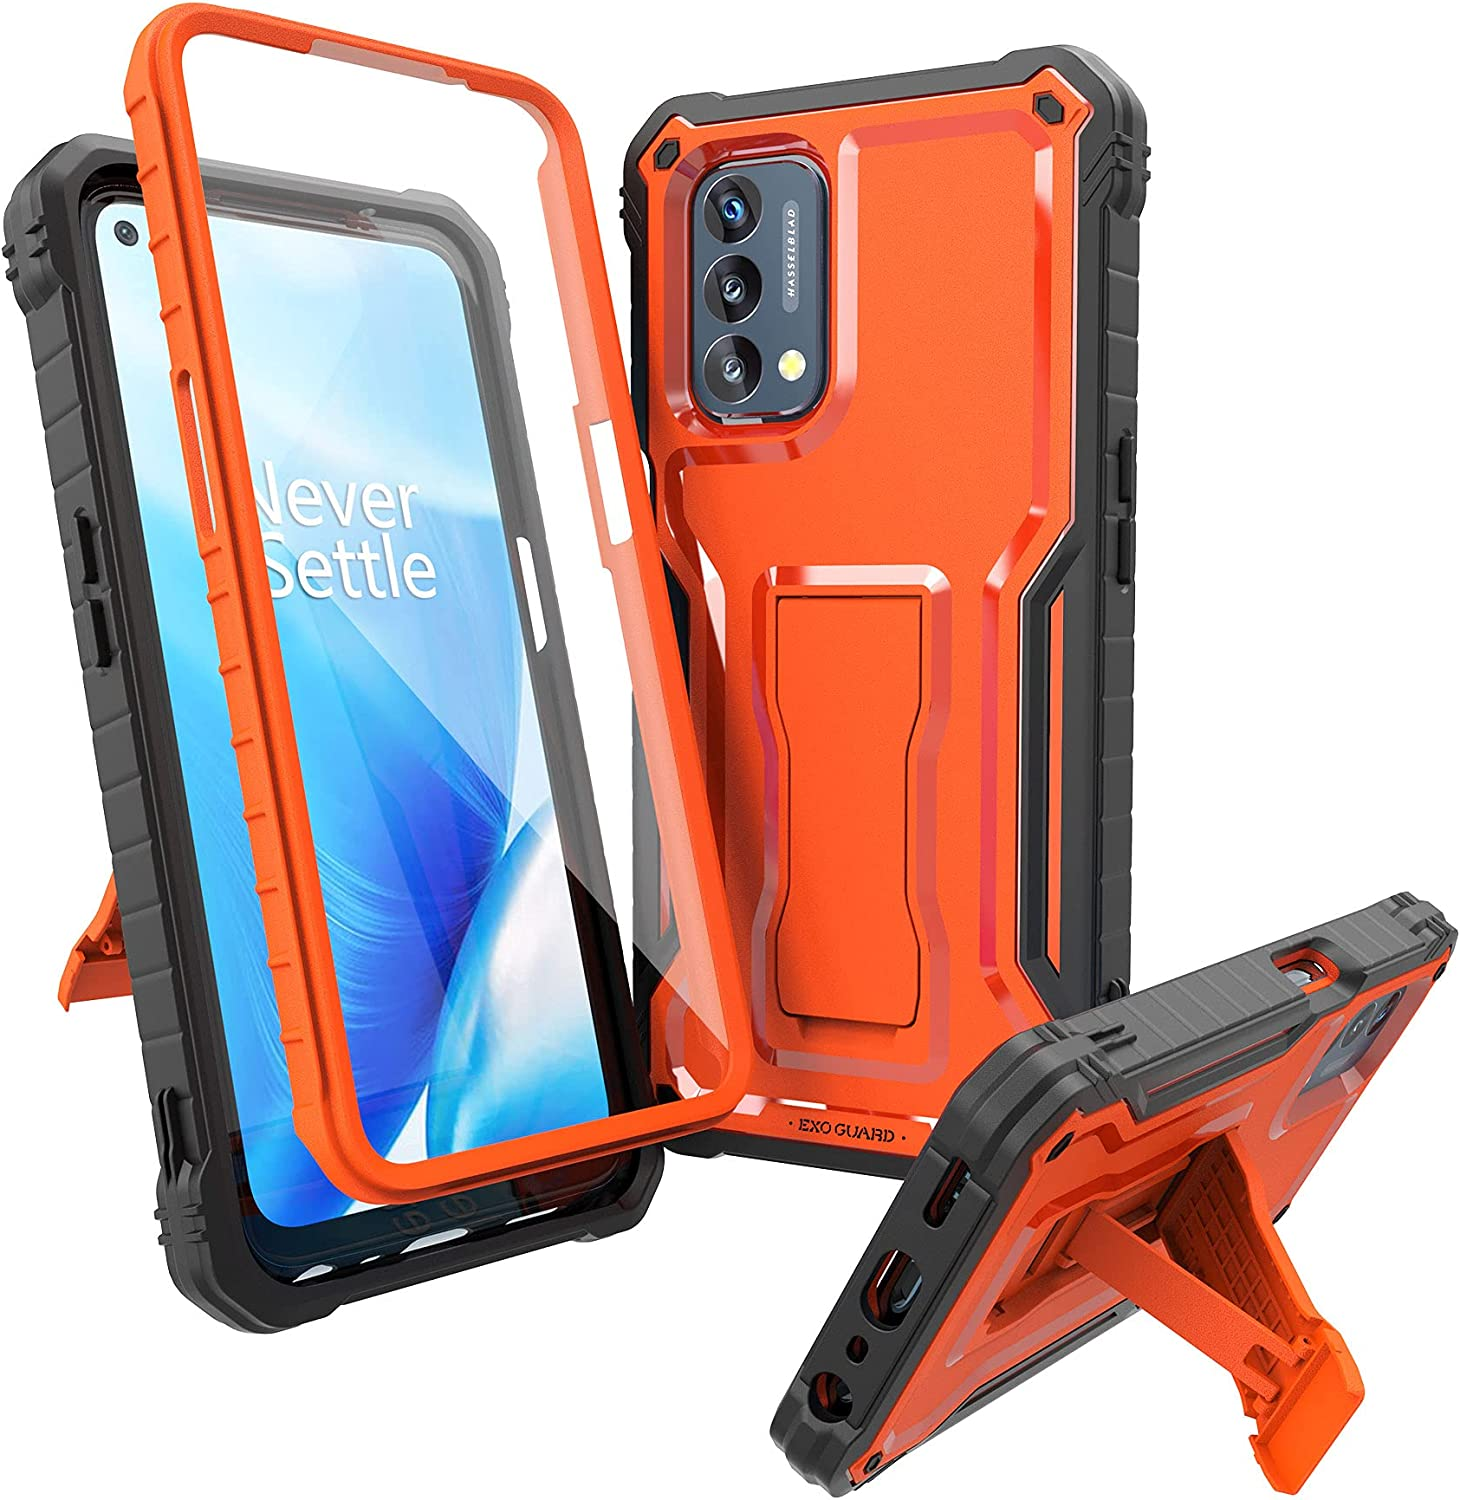 ExoGuard for OnePlus Nord N200 5G Case, Rubber Shockproof Full-Body Cover Case Built-in Screen Protector and Kickstand Compatible with OnePlus Nord N200 Phone (Orange)